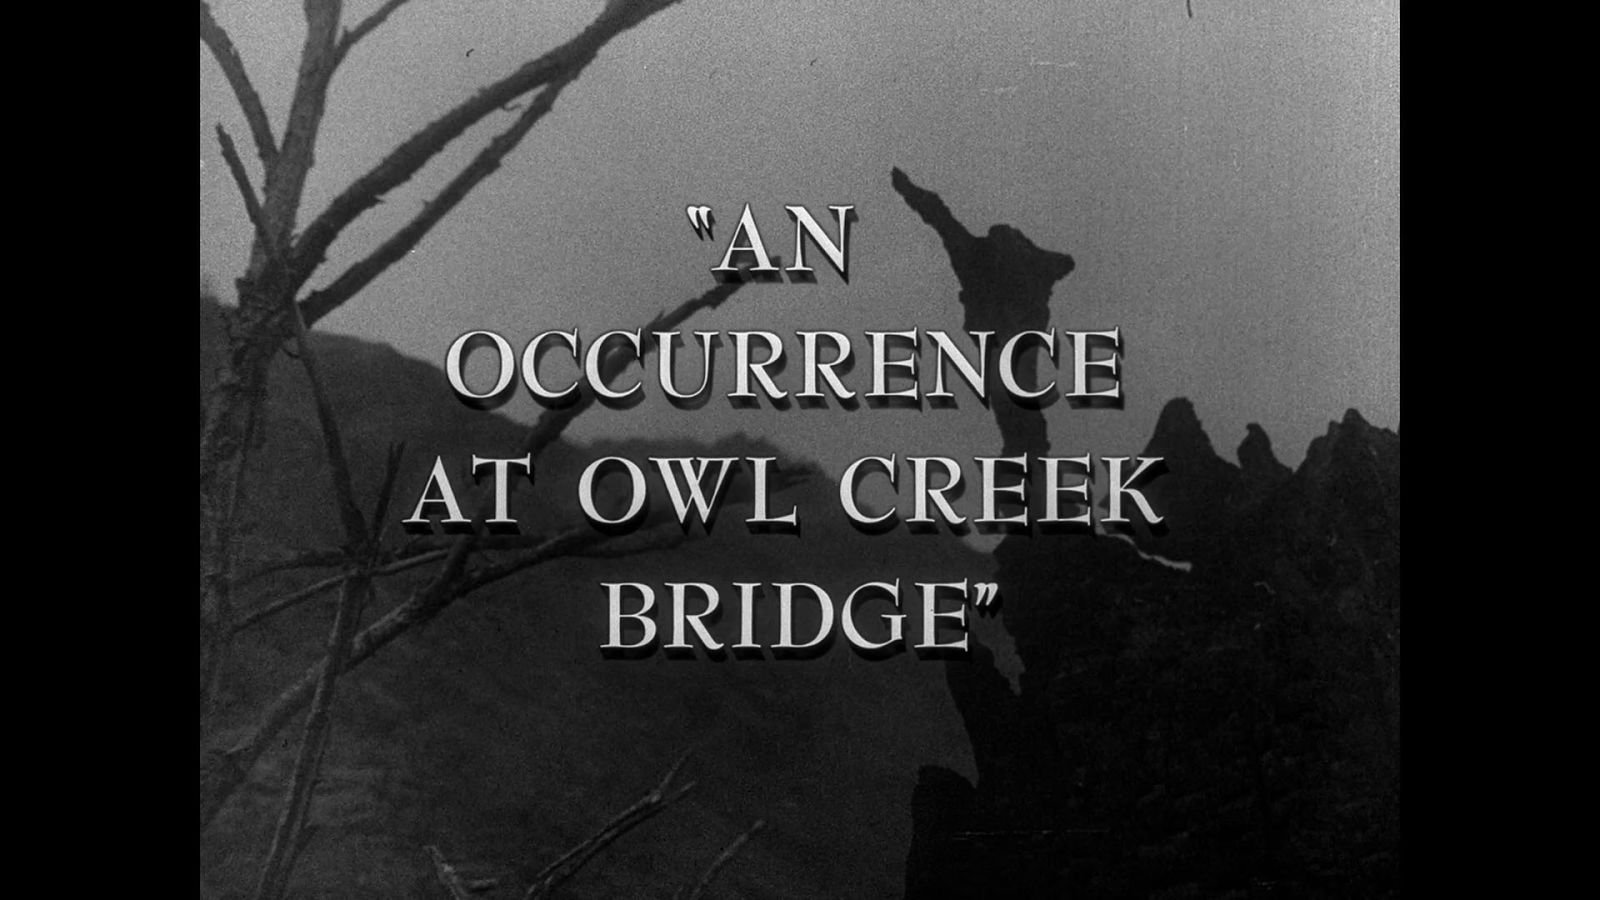 Cheap write my essay an occurrence at owl creek bridge